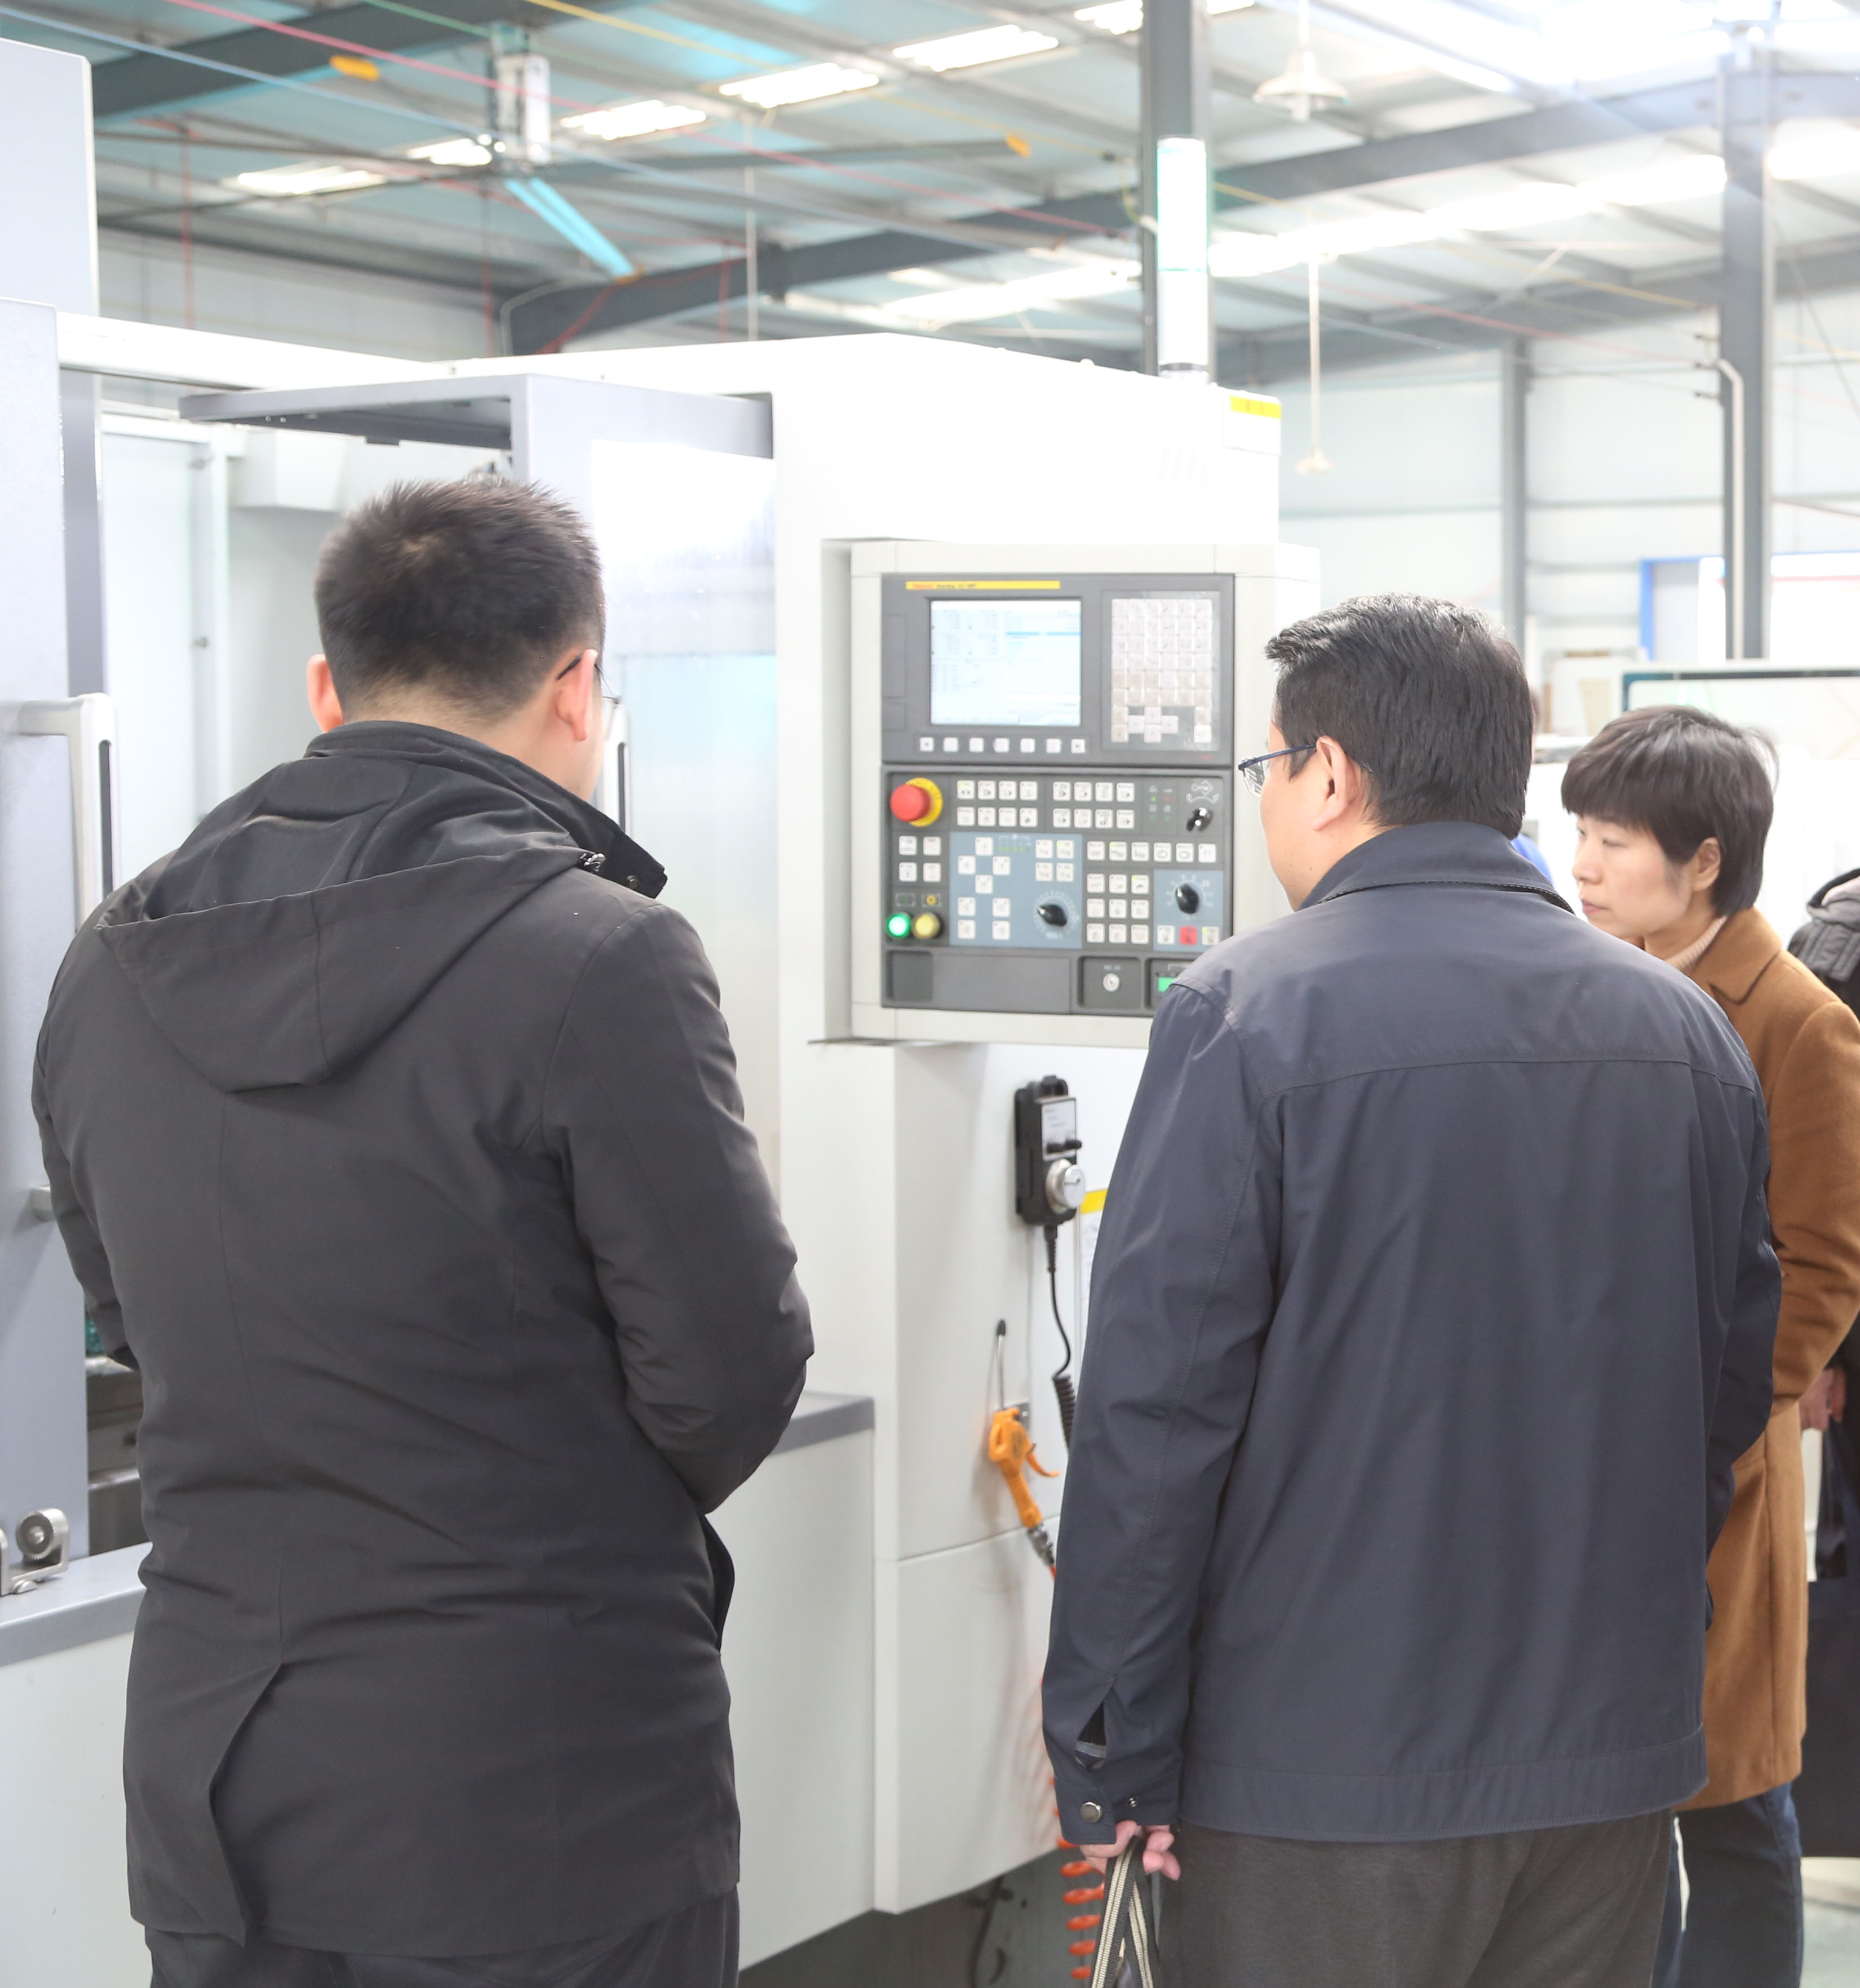 Jining Science and Technology Bureau leadership visit Mingtai company